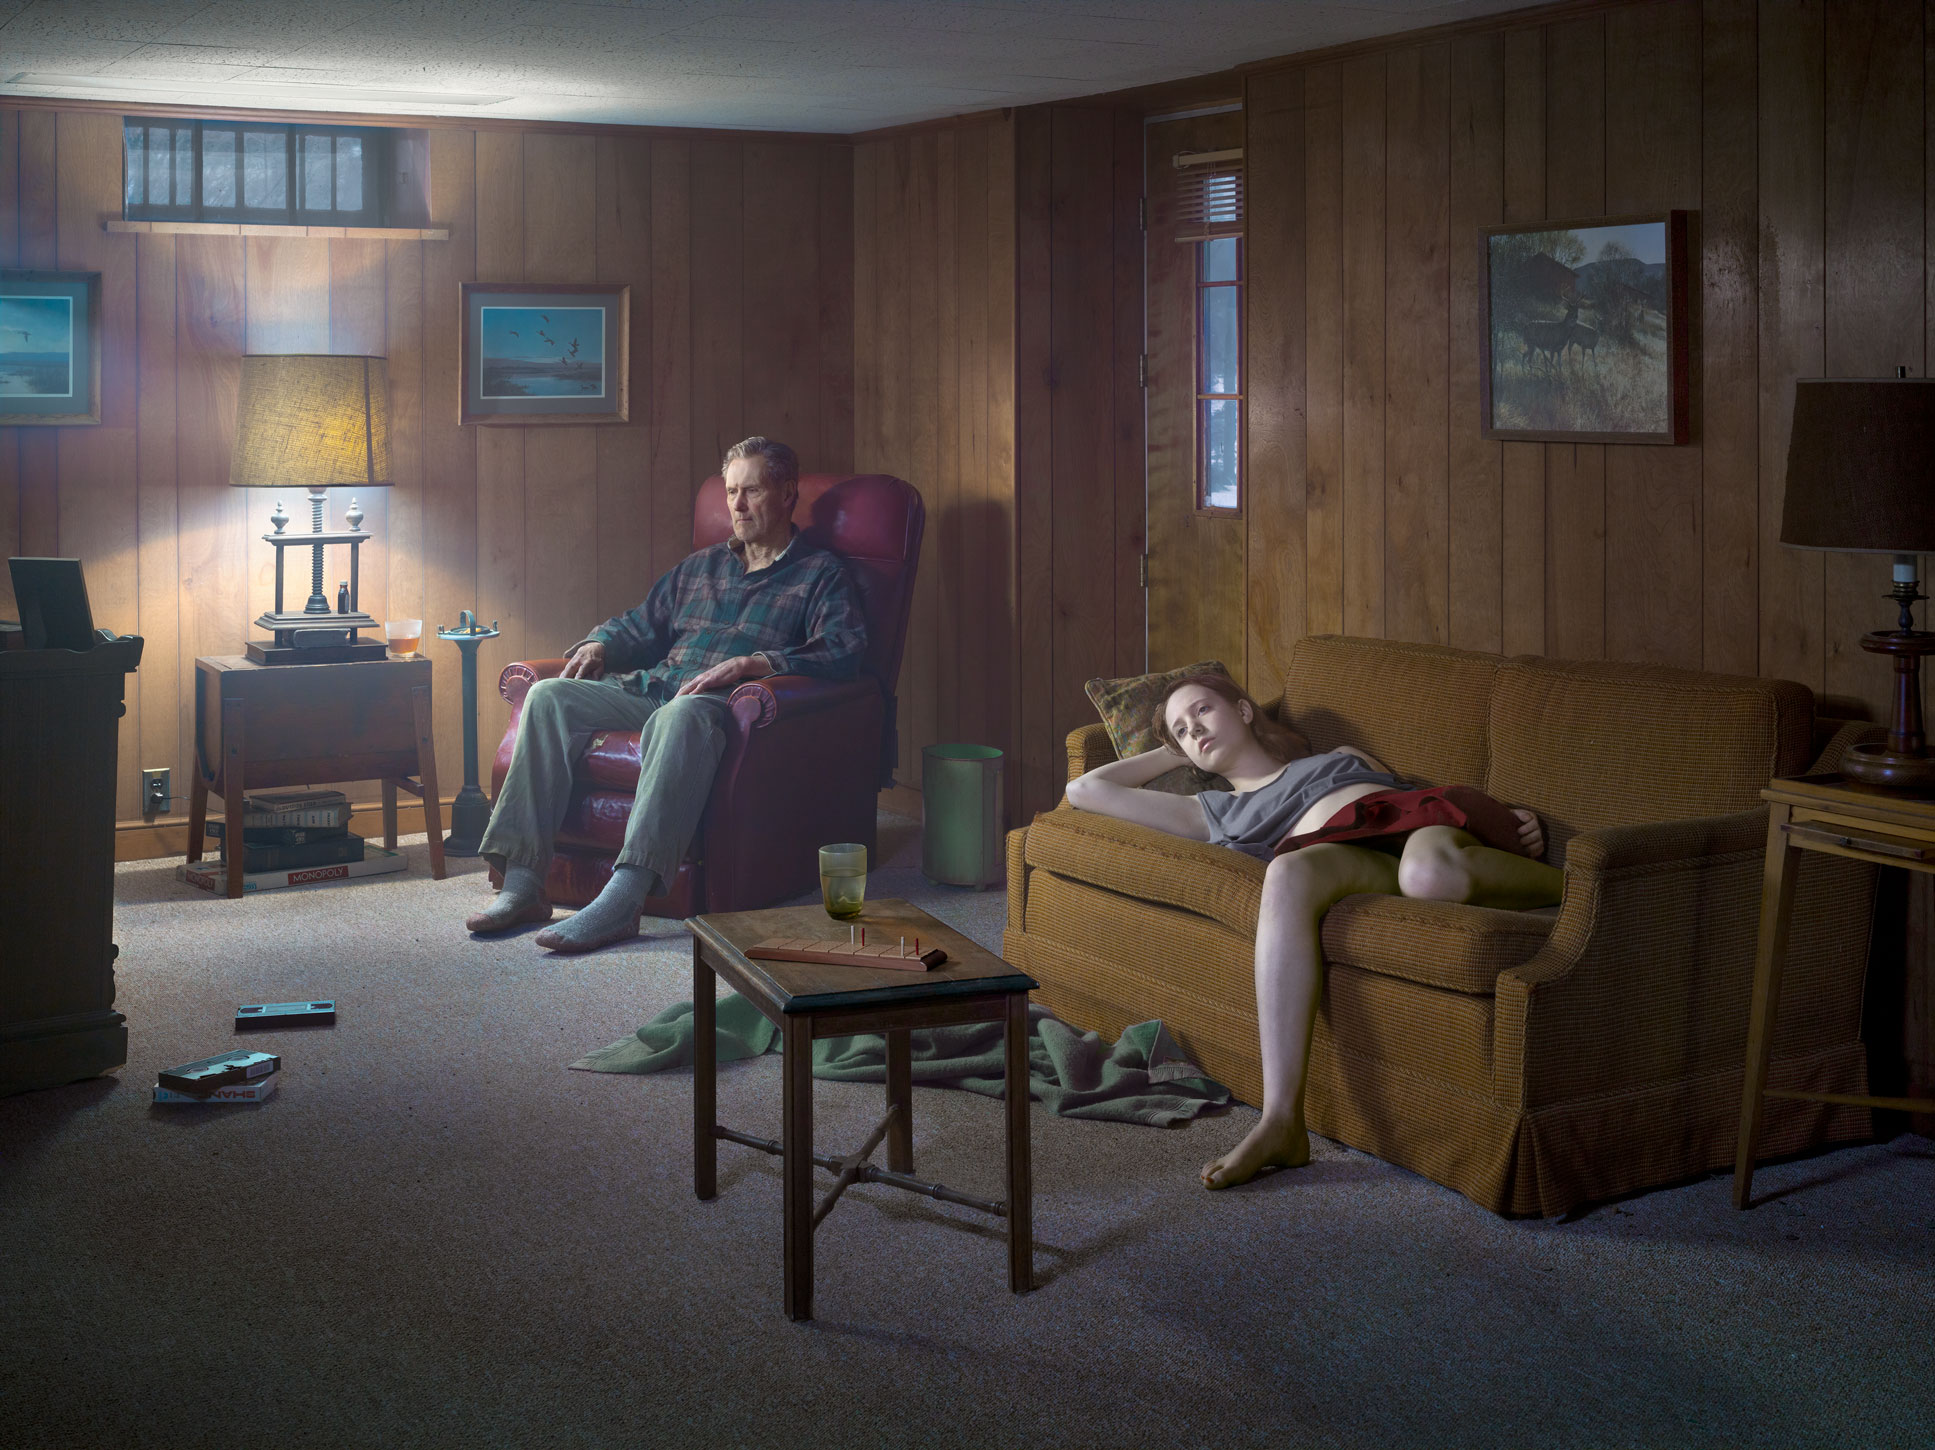 he Basement, 2014 Digital pigment print © Gregory Crewdson. Courtesy Gagosian.